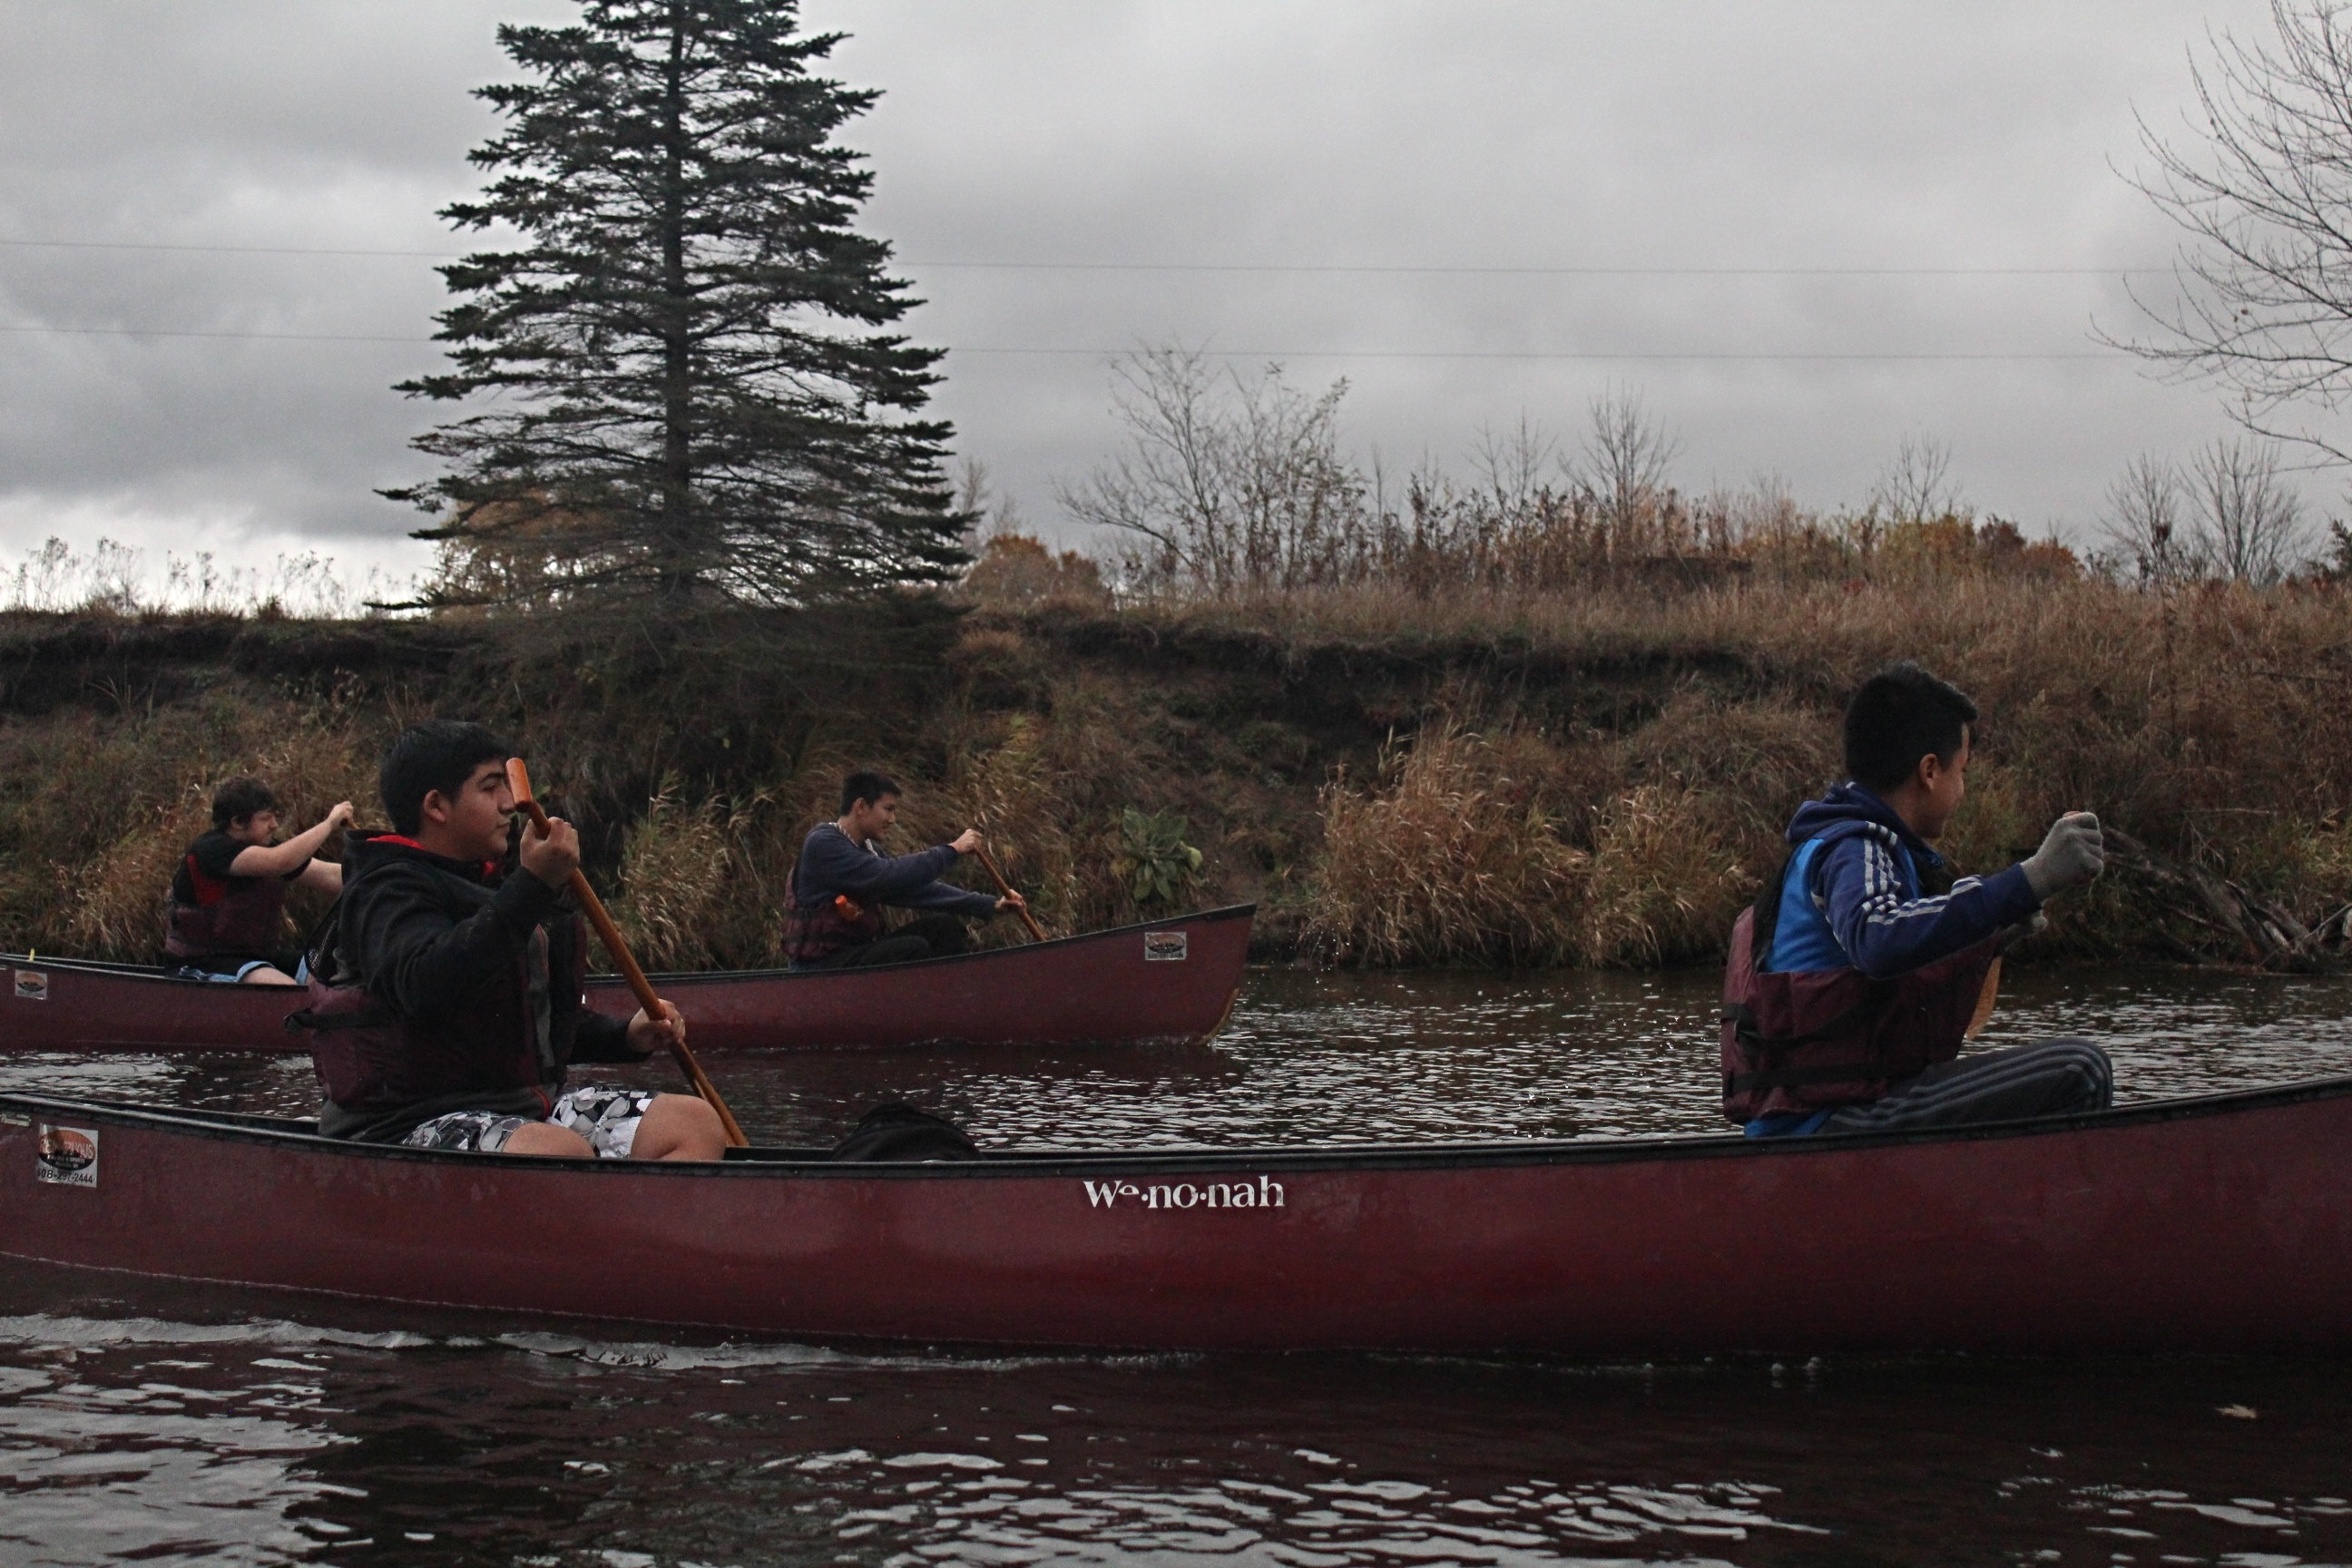 boys rowing in a kayak